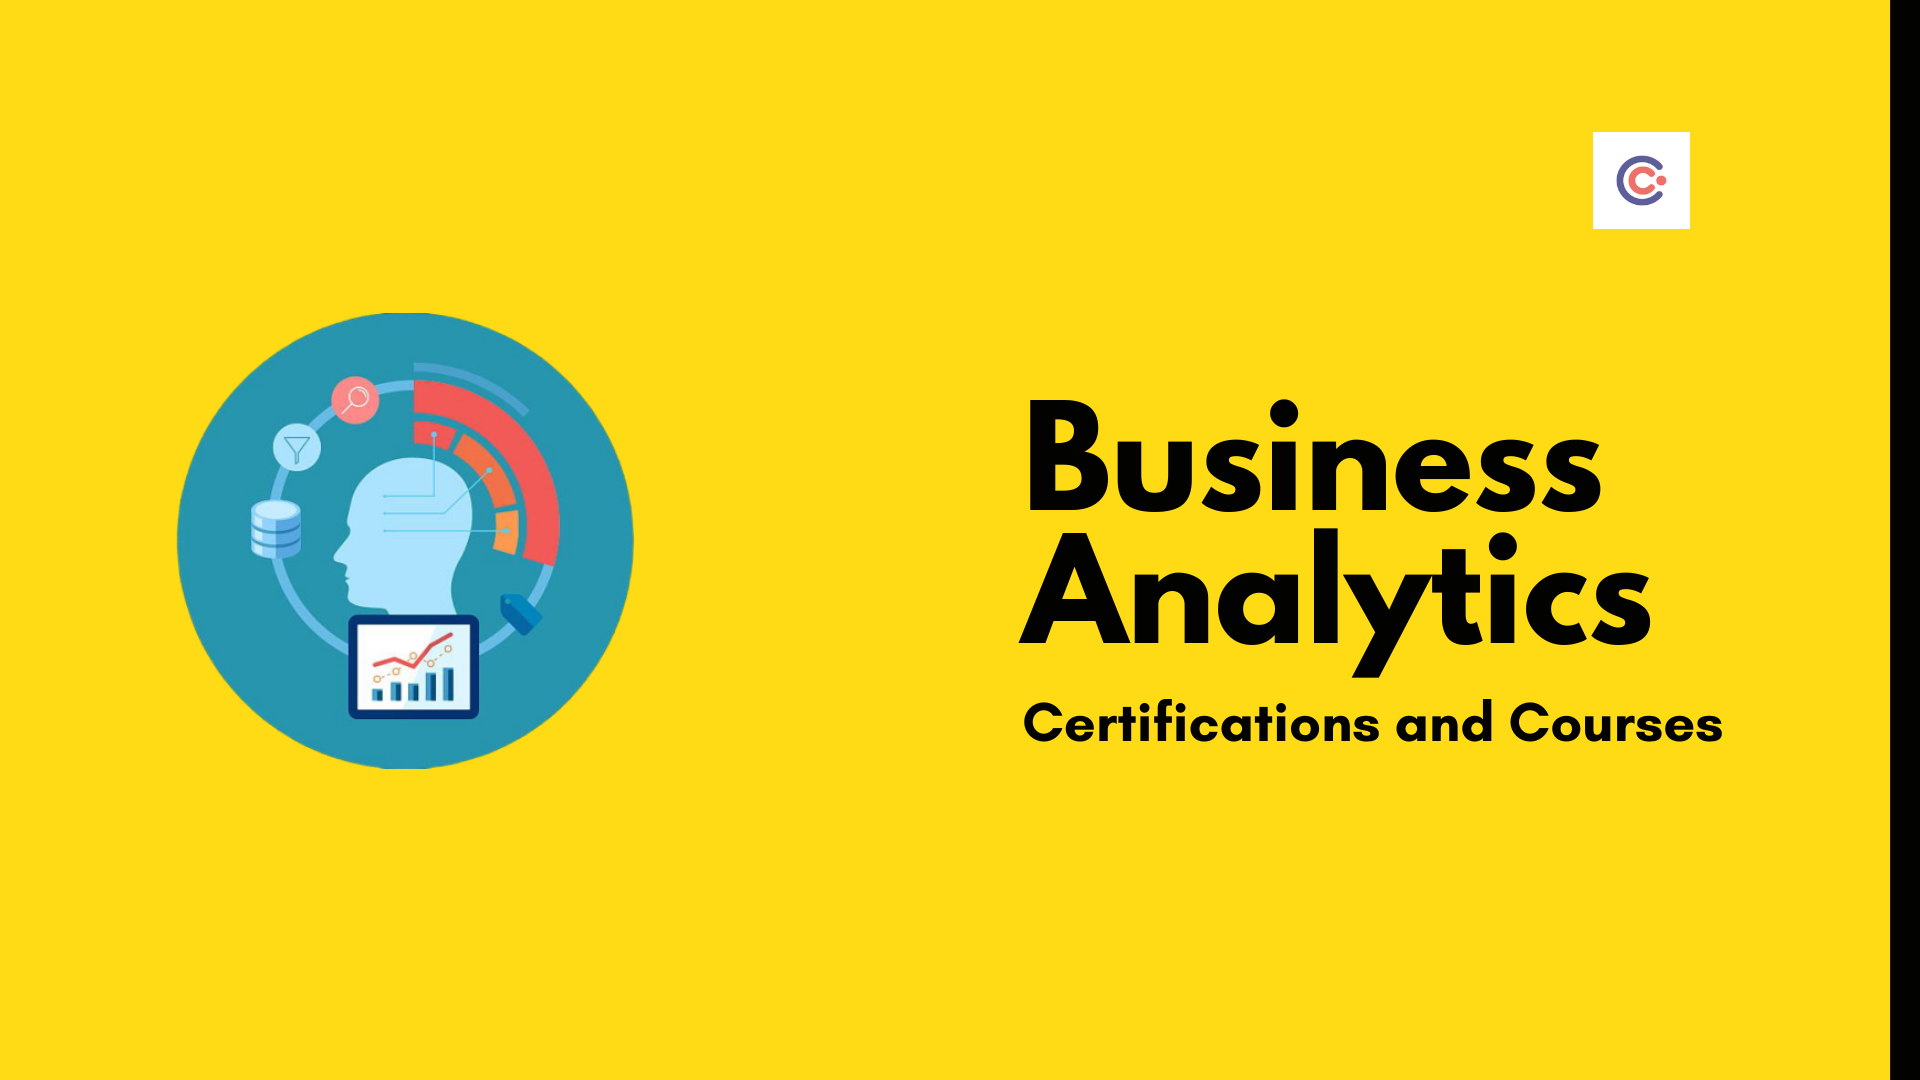 14 Best Business Analytics Certifications and Courses - Learn Business Analytics Online